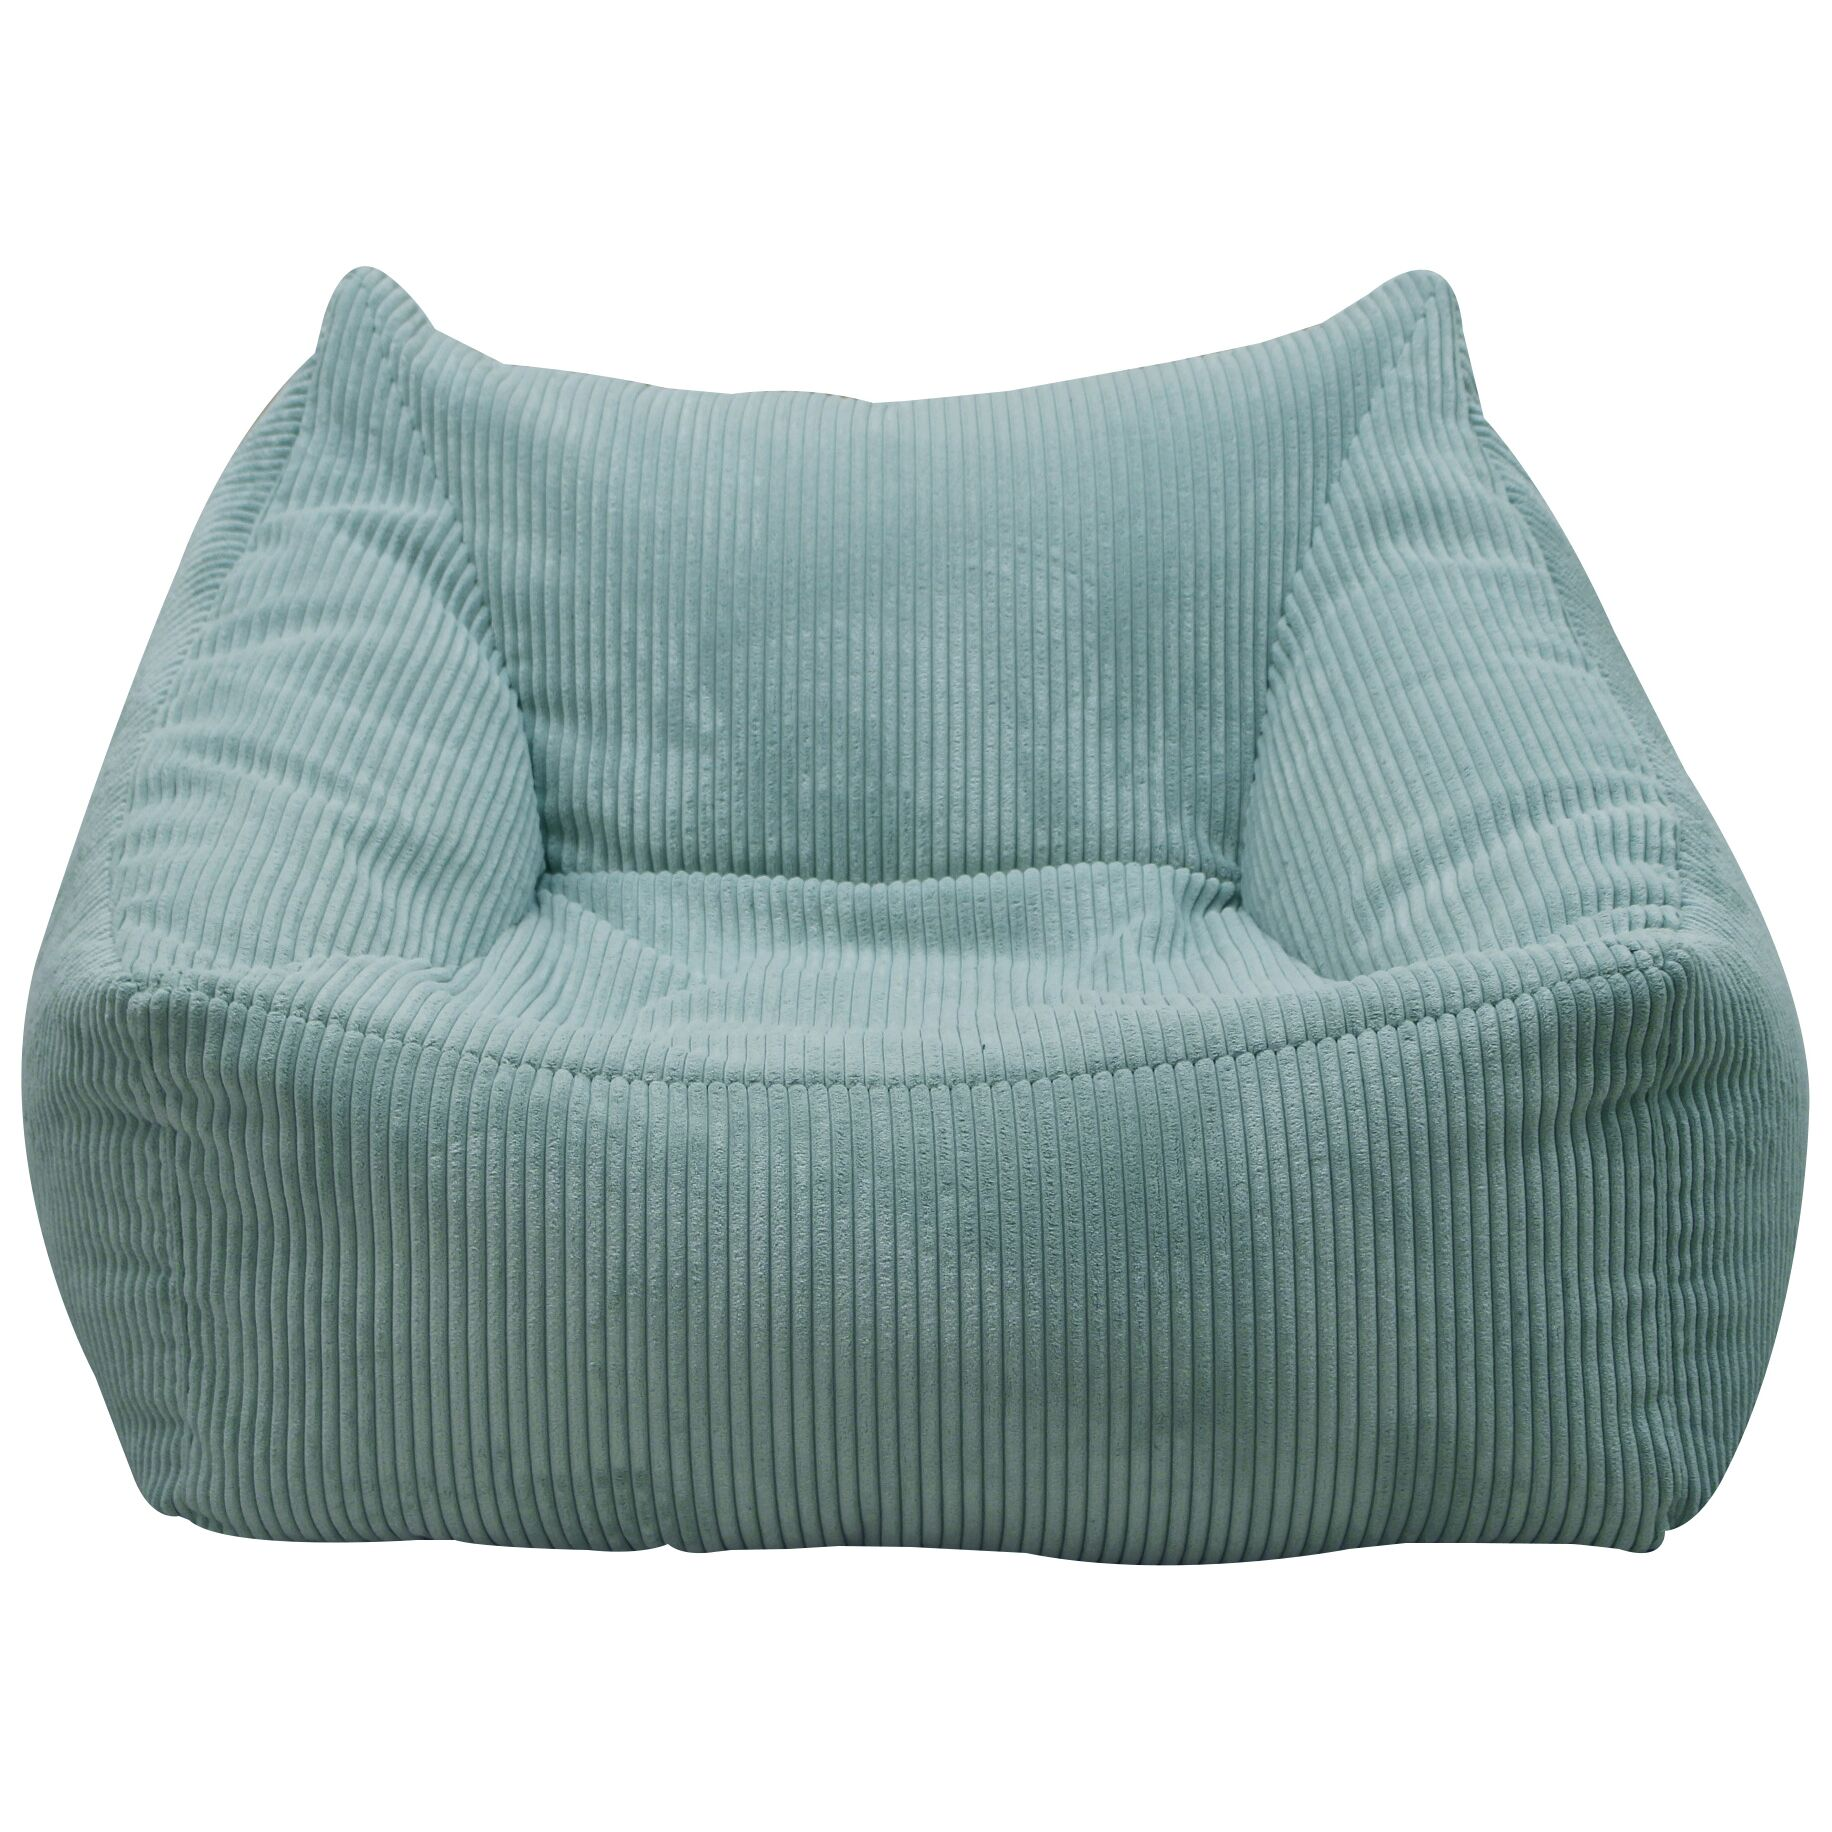 Foam Bean Bag Chair Upholstery: Spa Blue